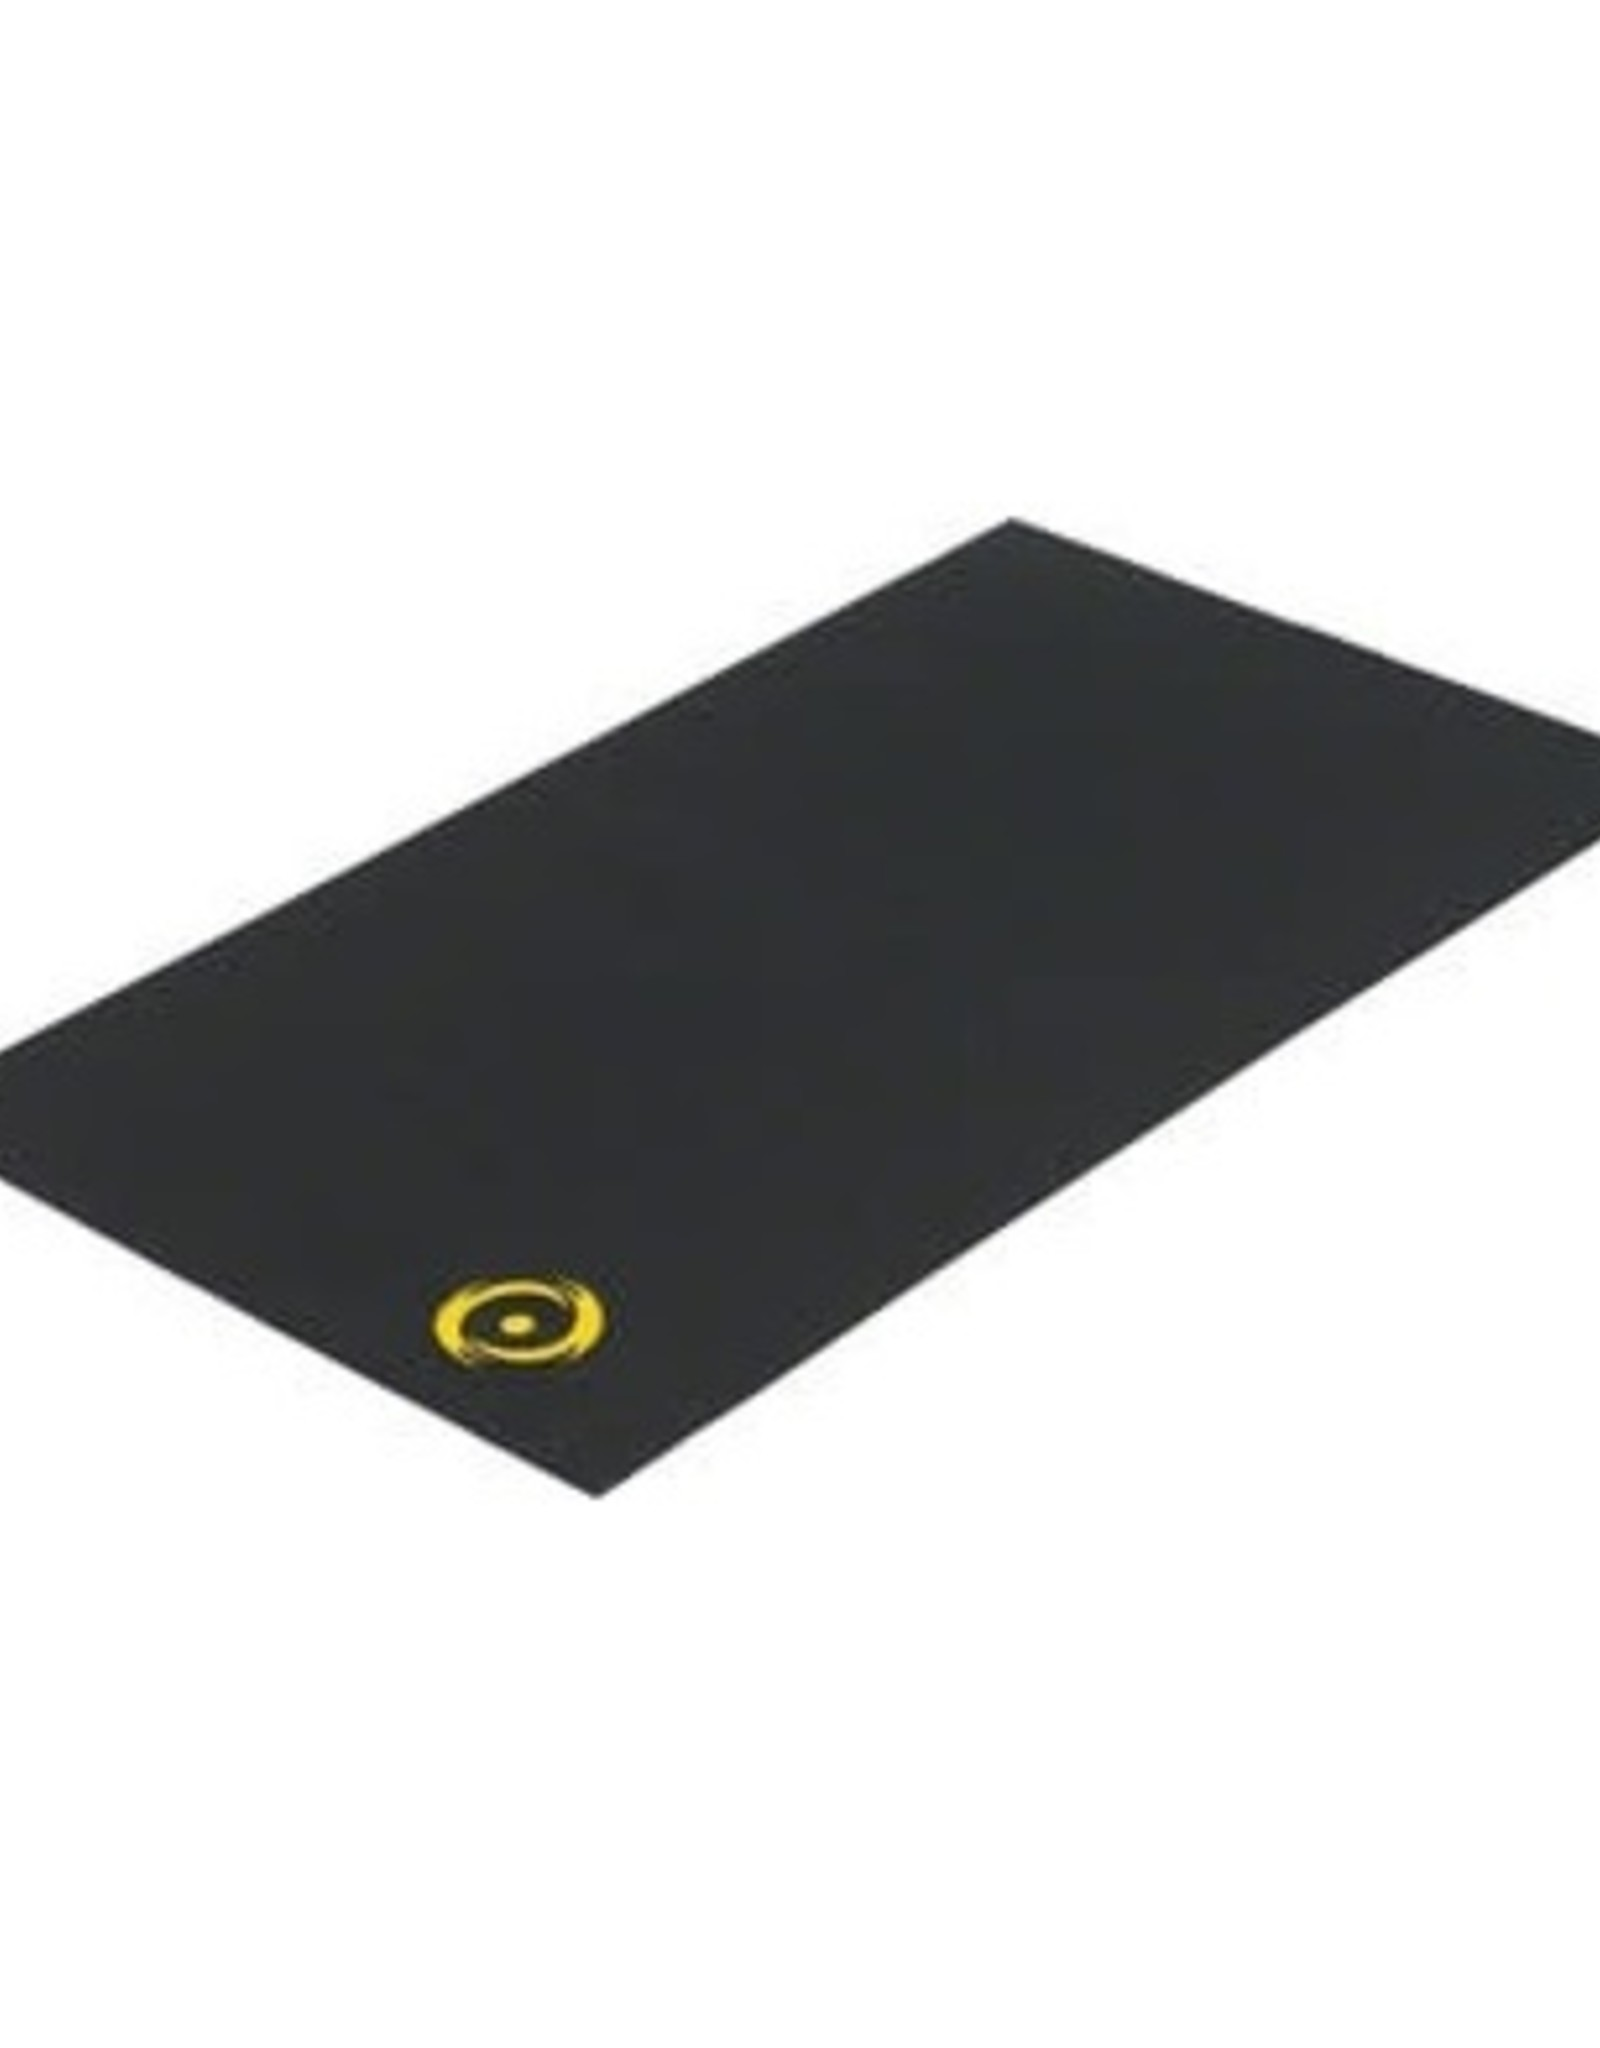 CycleOps Trainer Accessories - CycleOps Trainer Mat Protects Floors